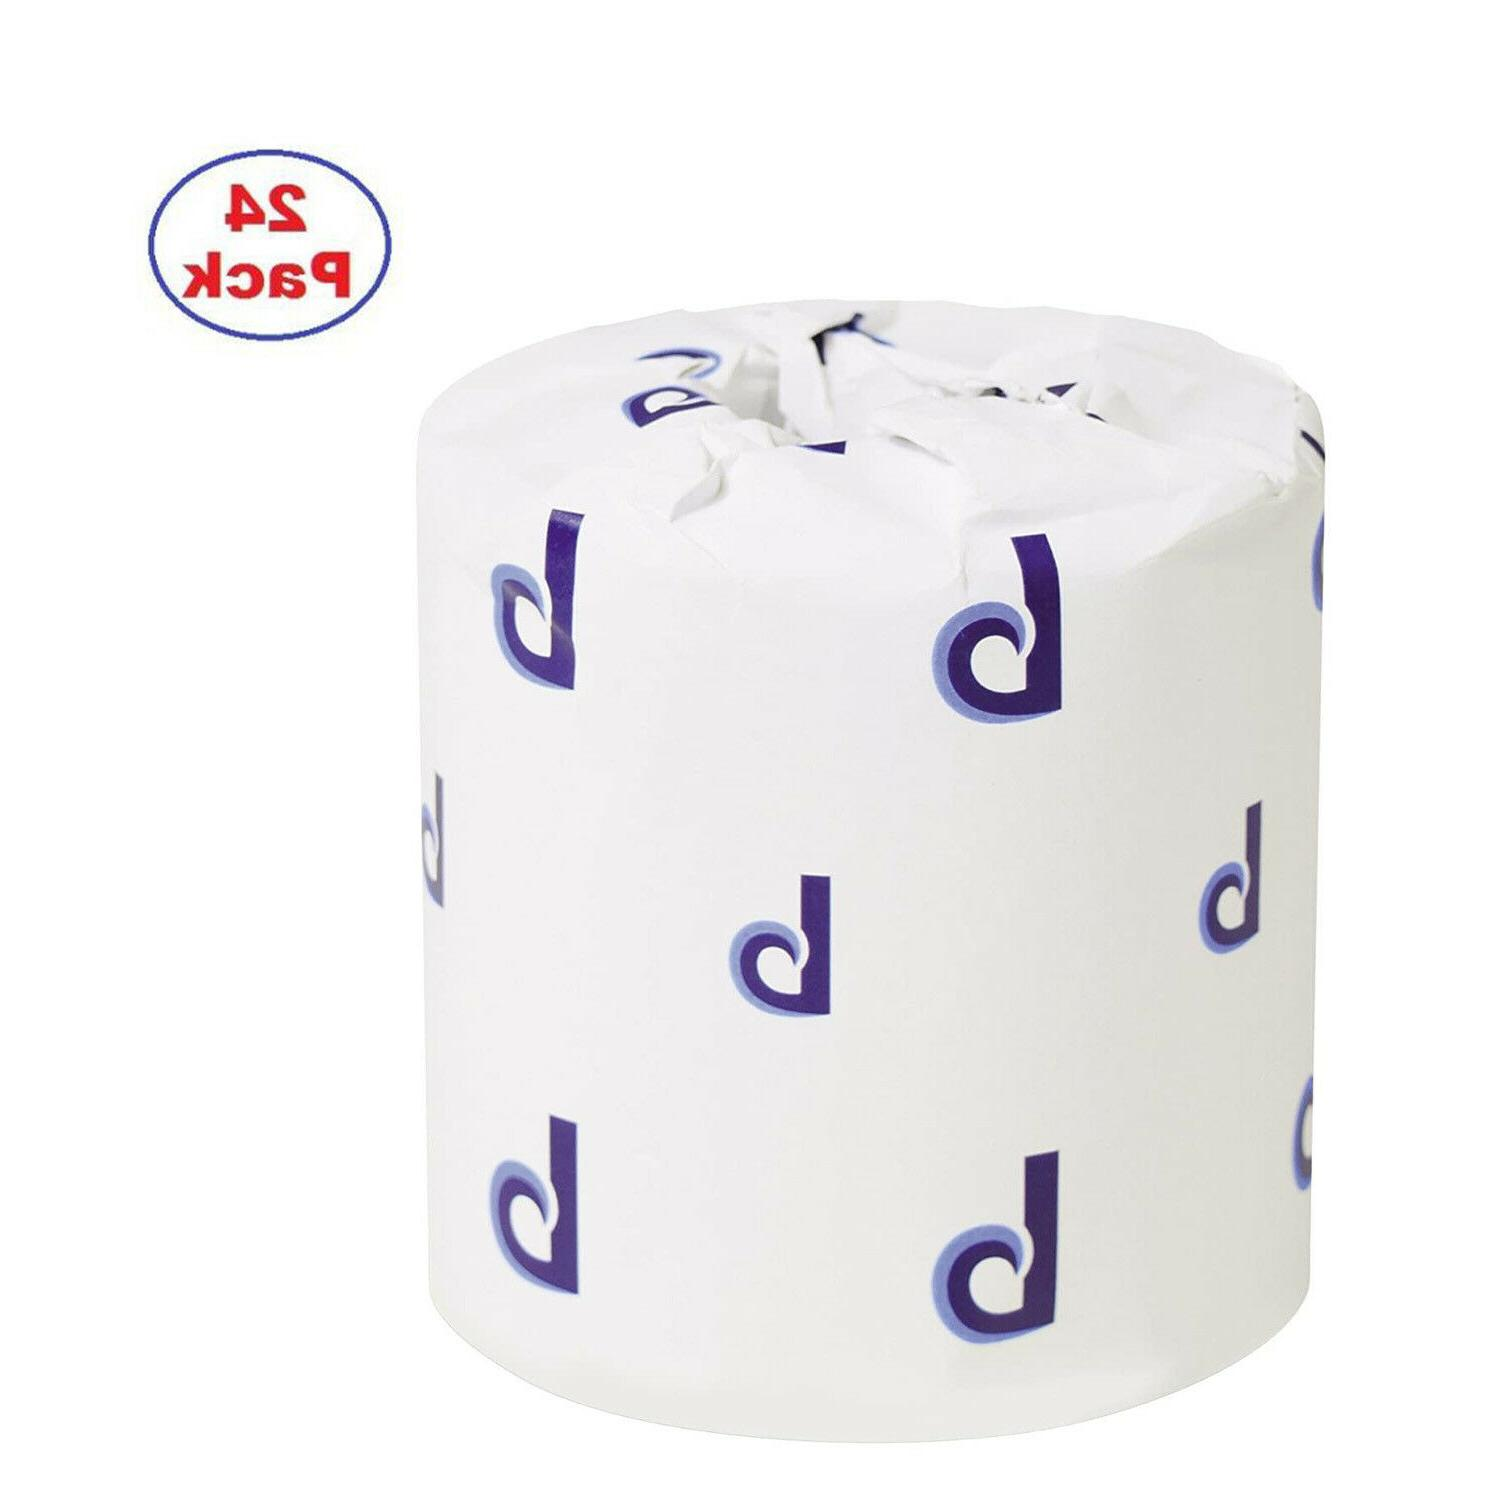 24 rolls of two ply toilet tissue